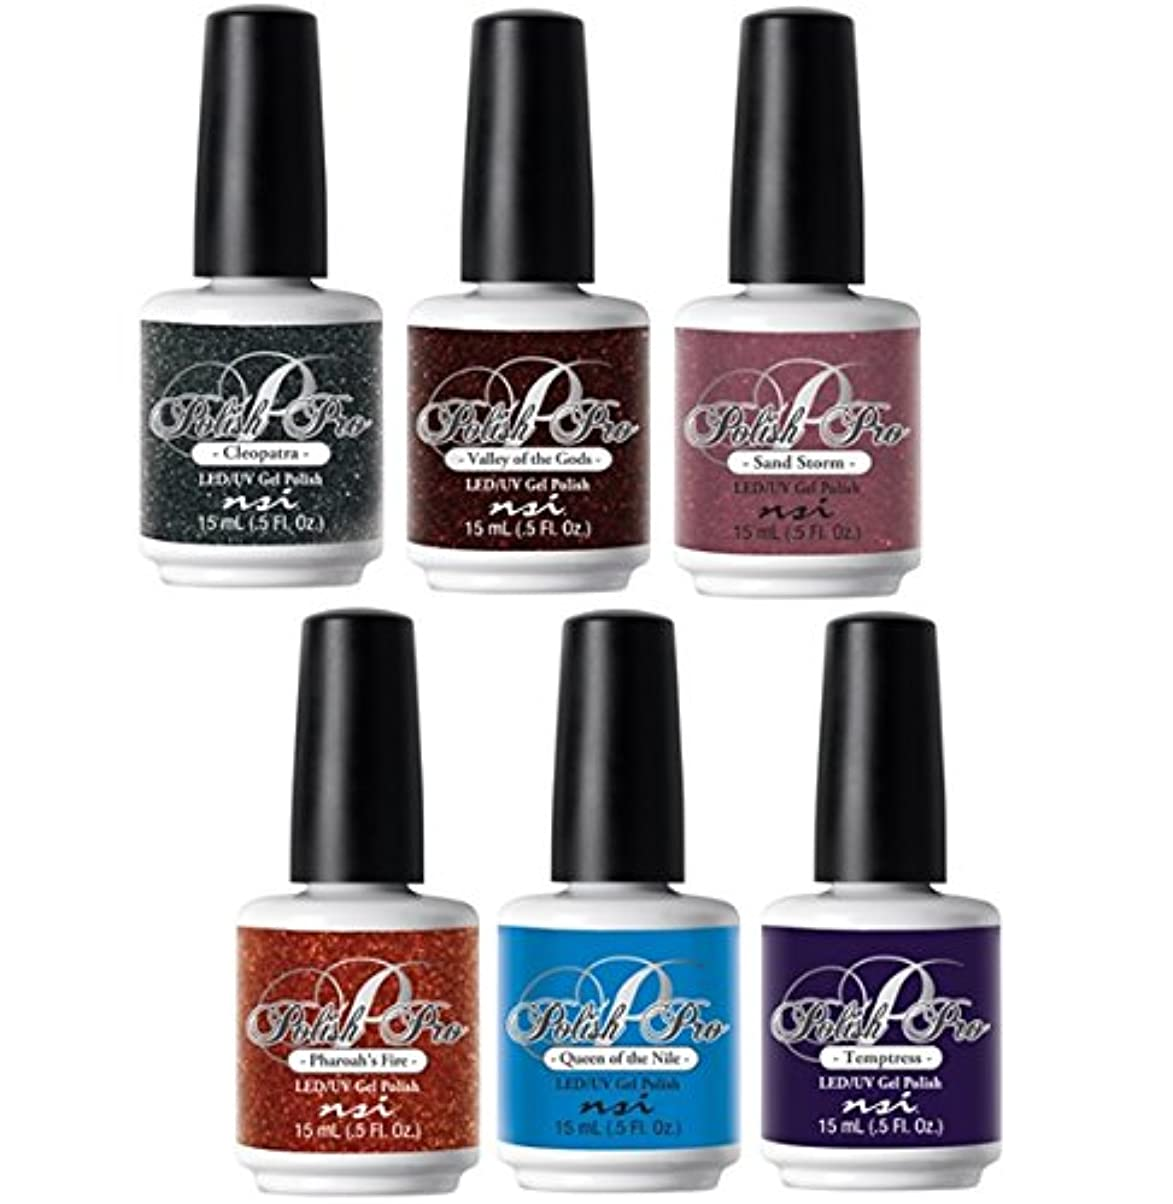 凶暴な不測の事態スペインNSI Polish Pro Gel Polish - Egyptian Goddess Collection - All 6 Colors - 15 ml/0.5 oz Each